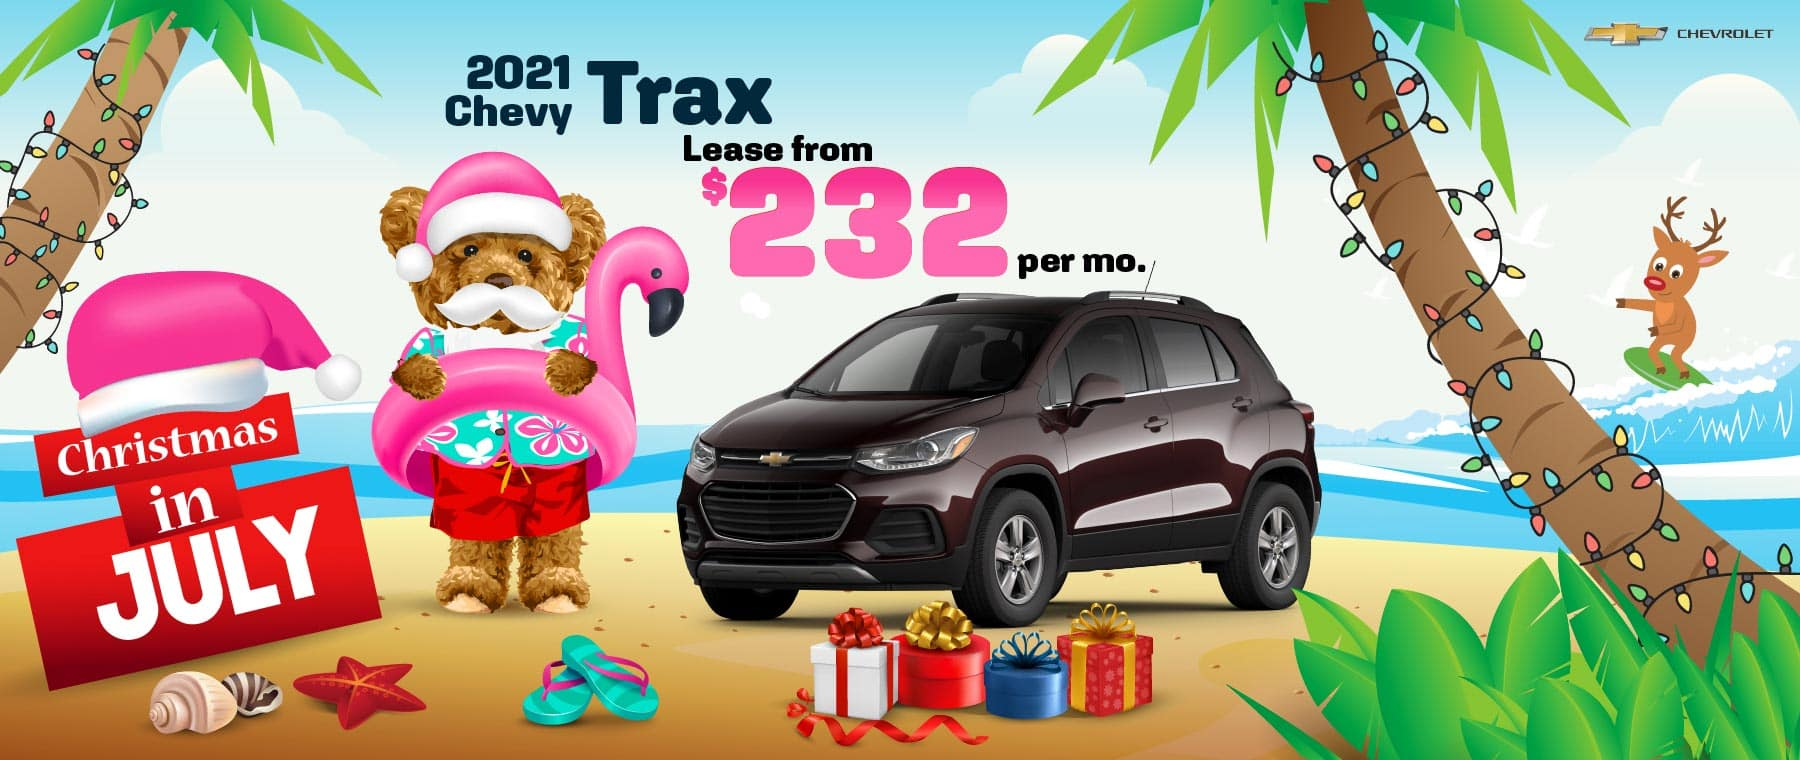 2021 Chevy Trax - lease from $232 per month